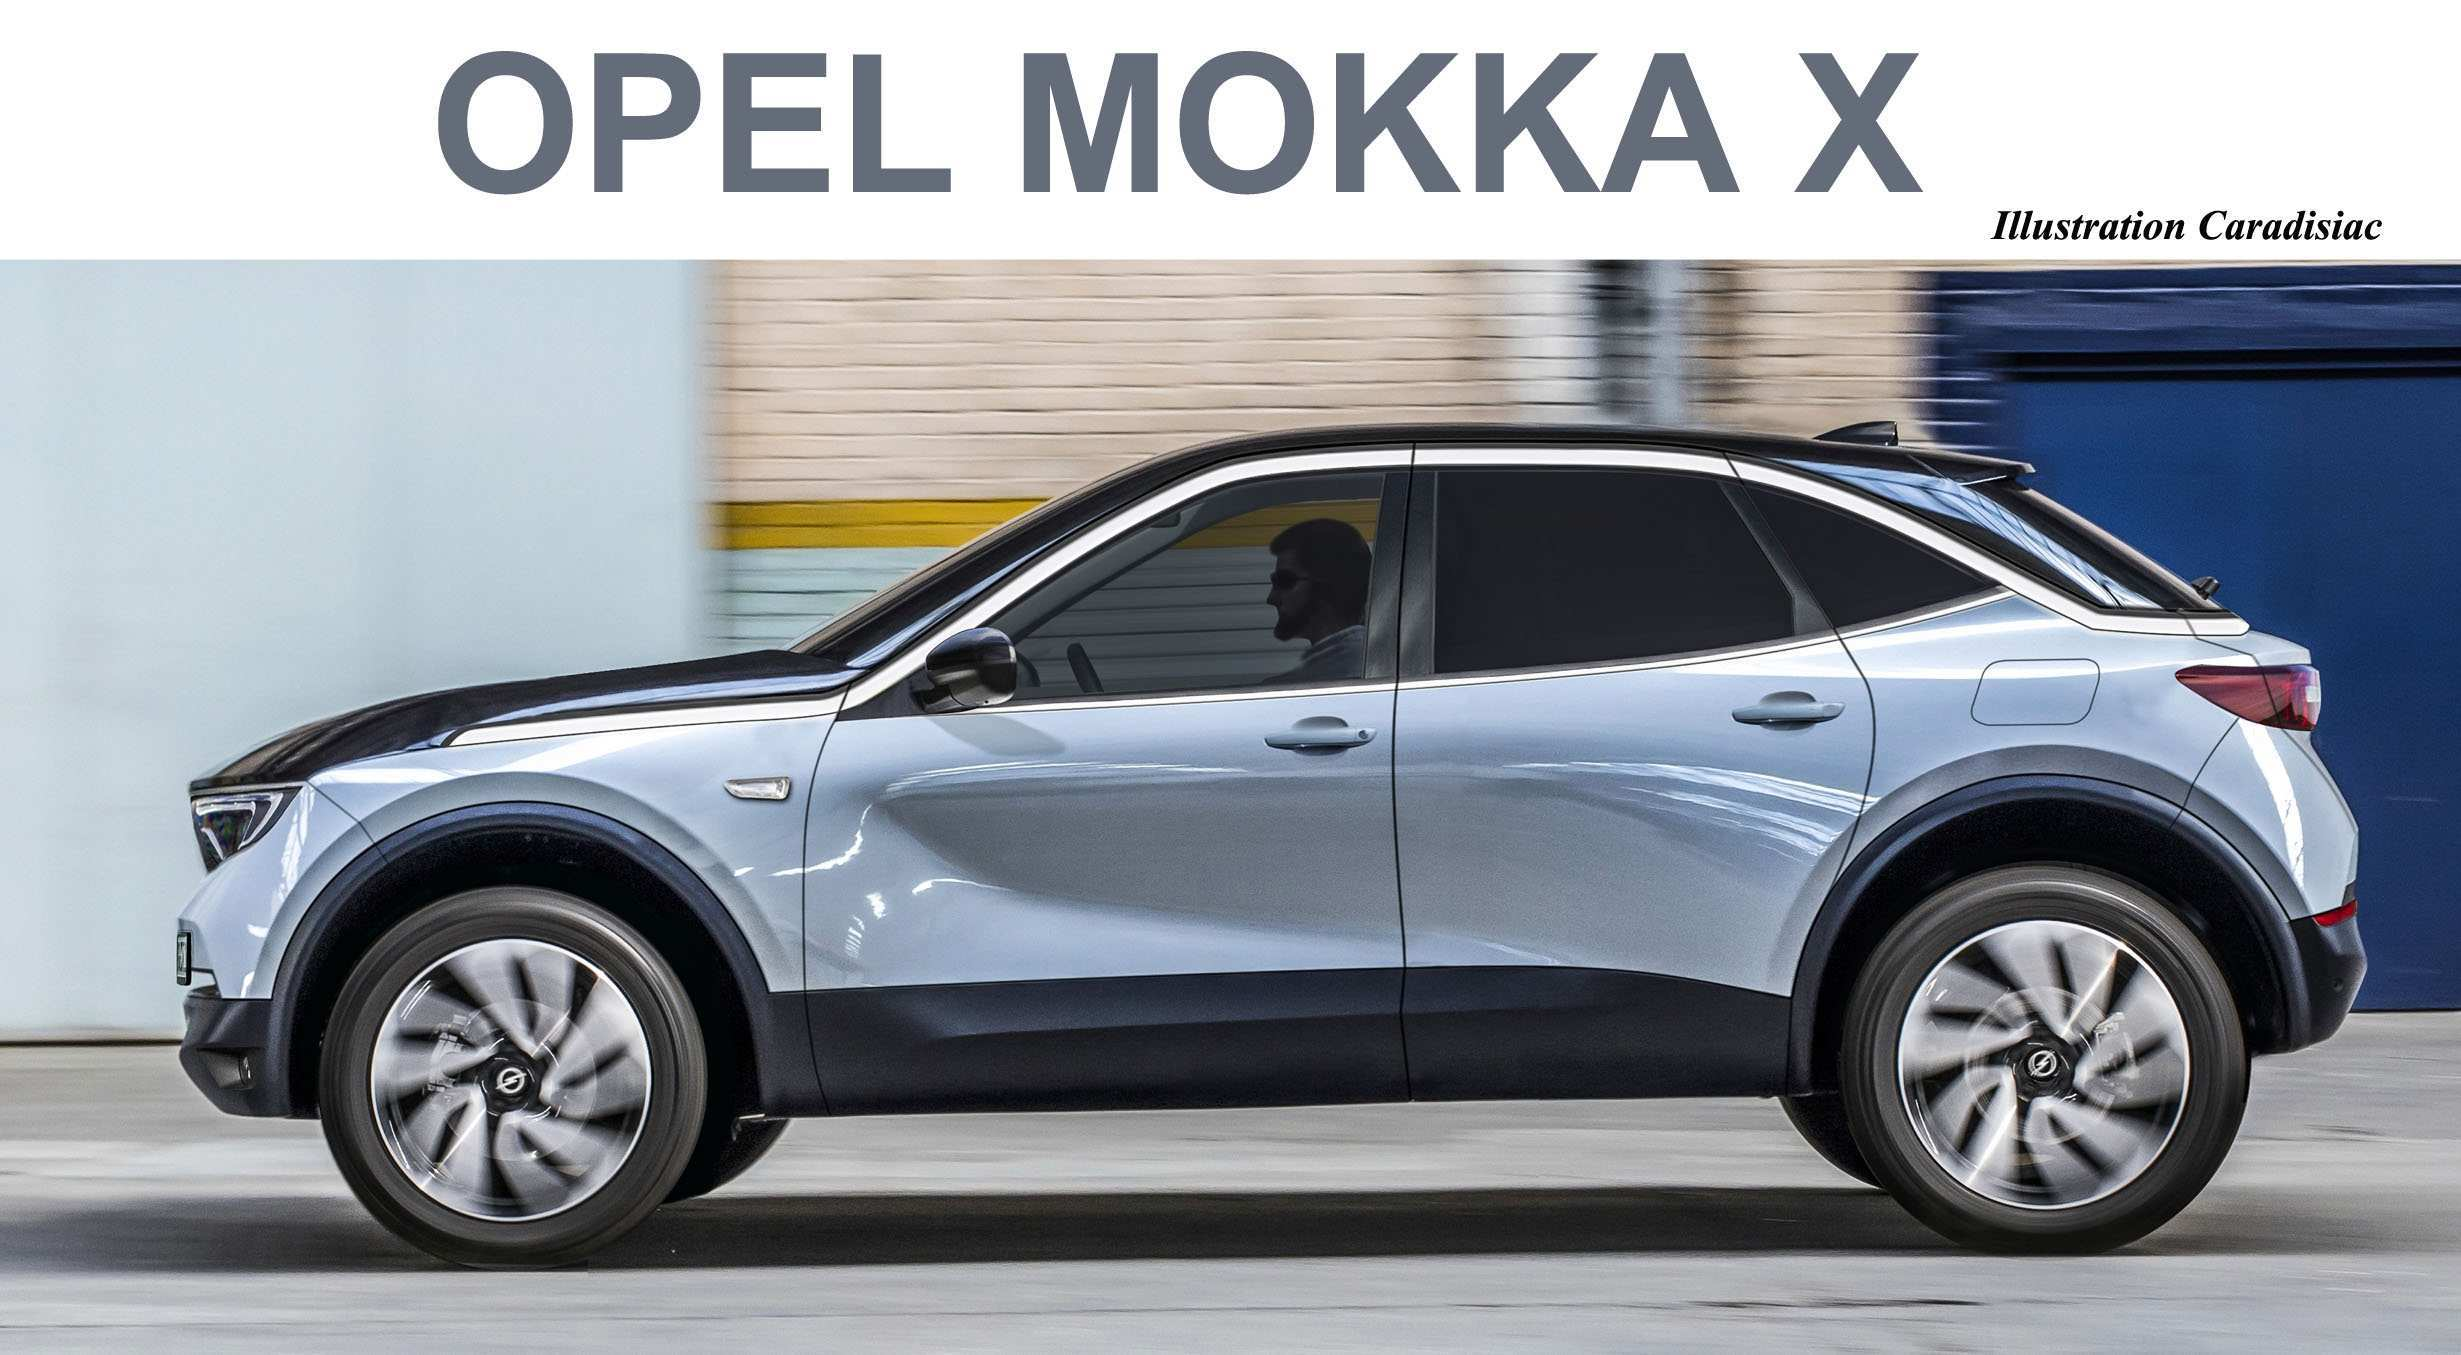 22 All New Futur Opel Mokka 2020 Pricing